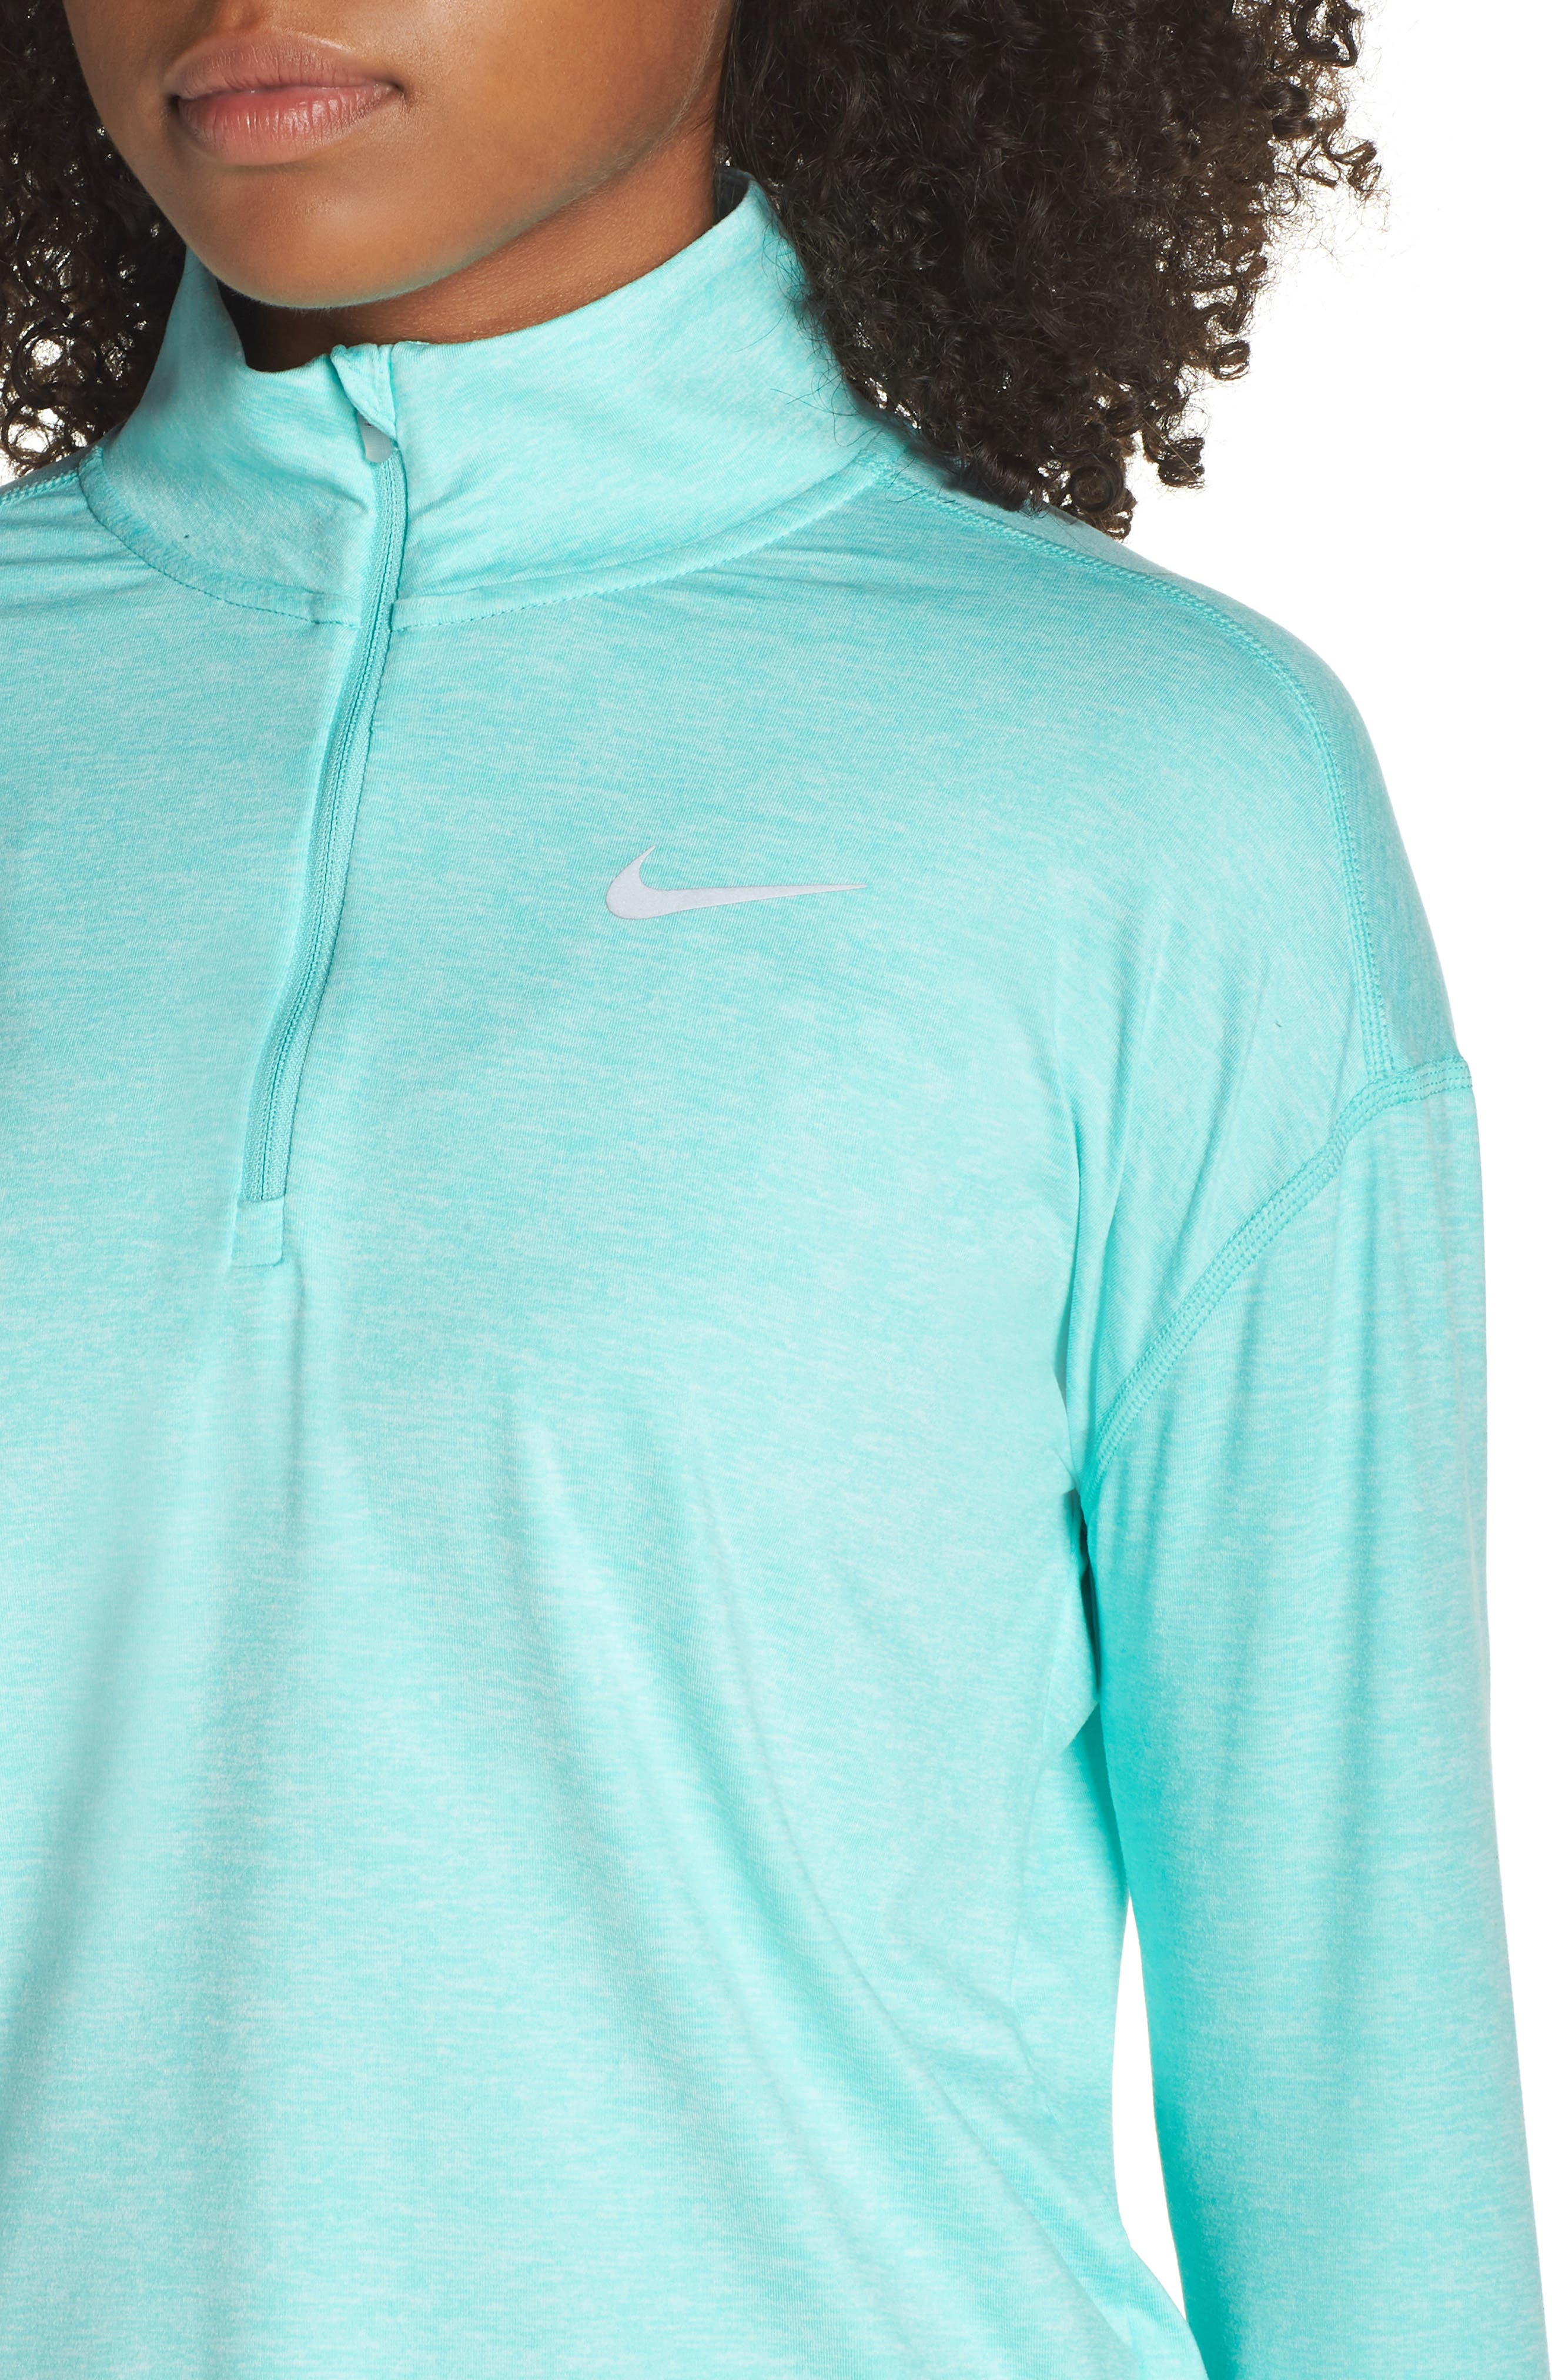 Element Long-Sleeve Running Top,                             Alternate thumbnail 4, color,                             TROPICAL TWIST/ TEAL TINT